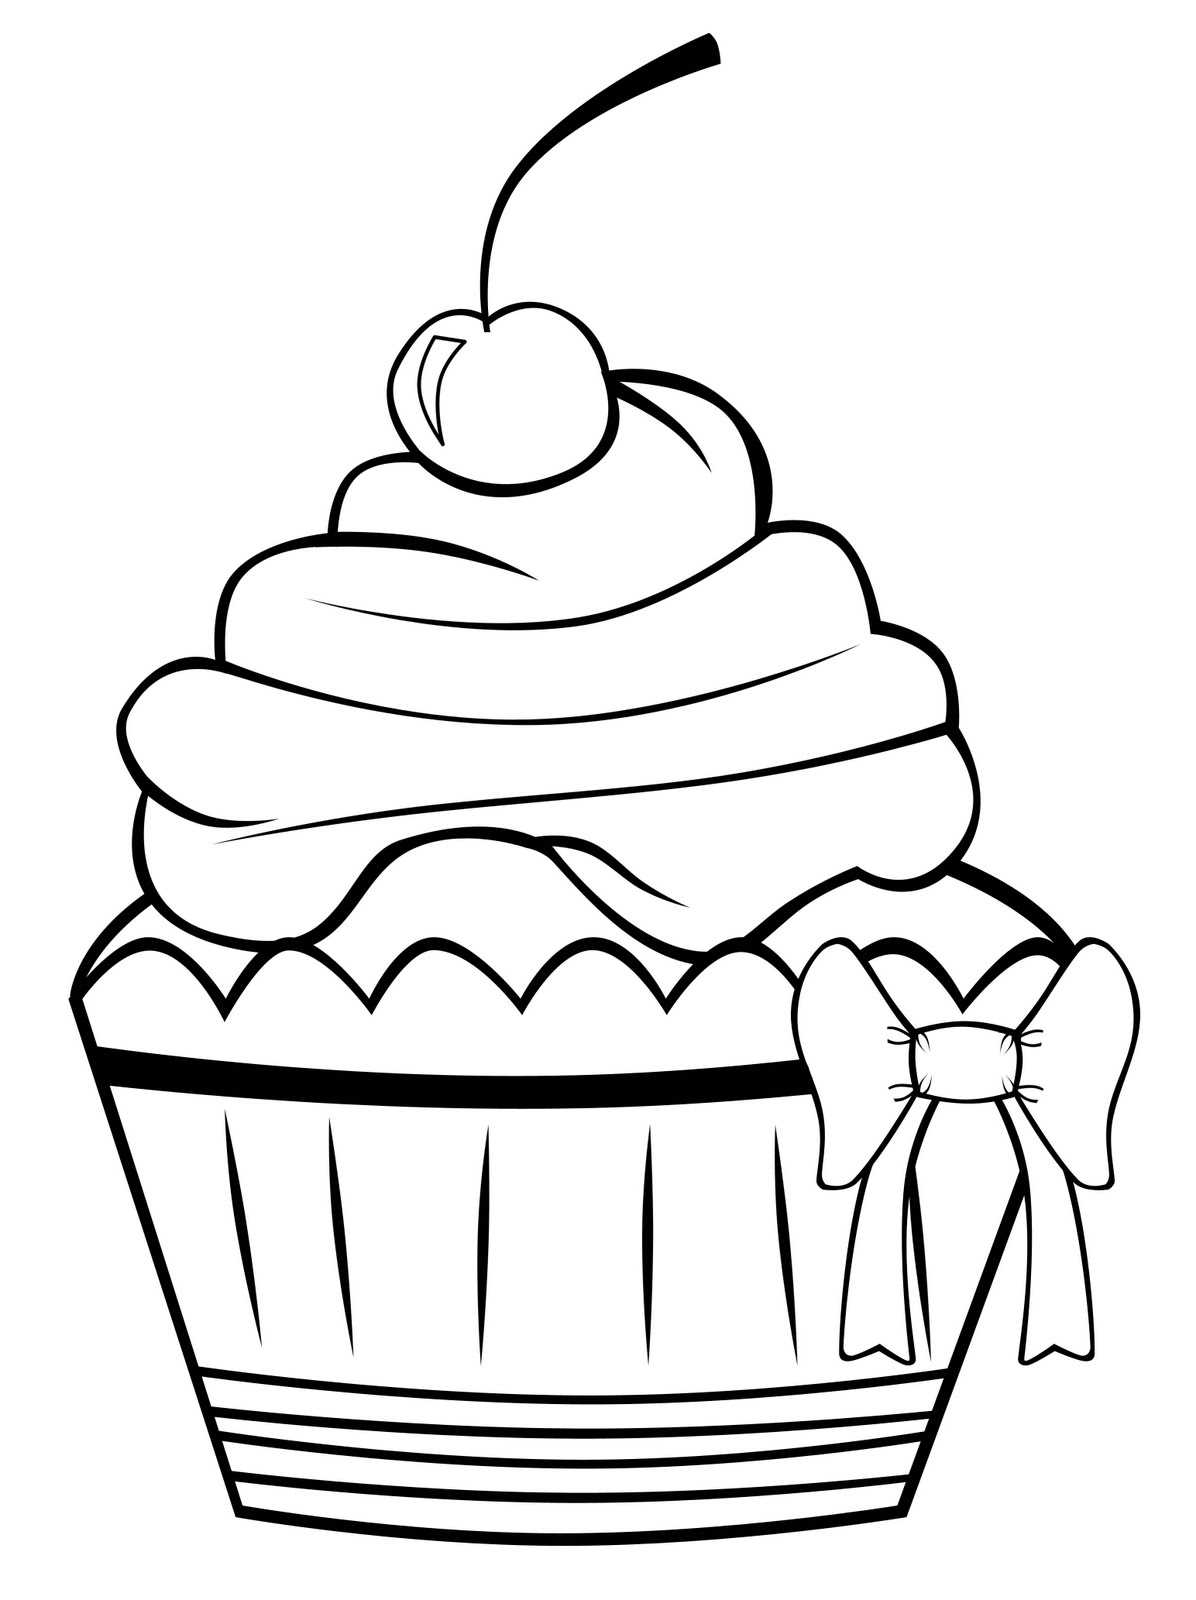 easy cupcake coloring pages print coloring image momjunction cupcake coloring easy cupcake coloring pages